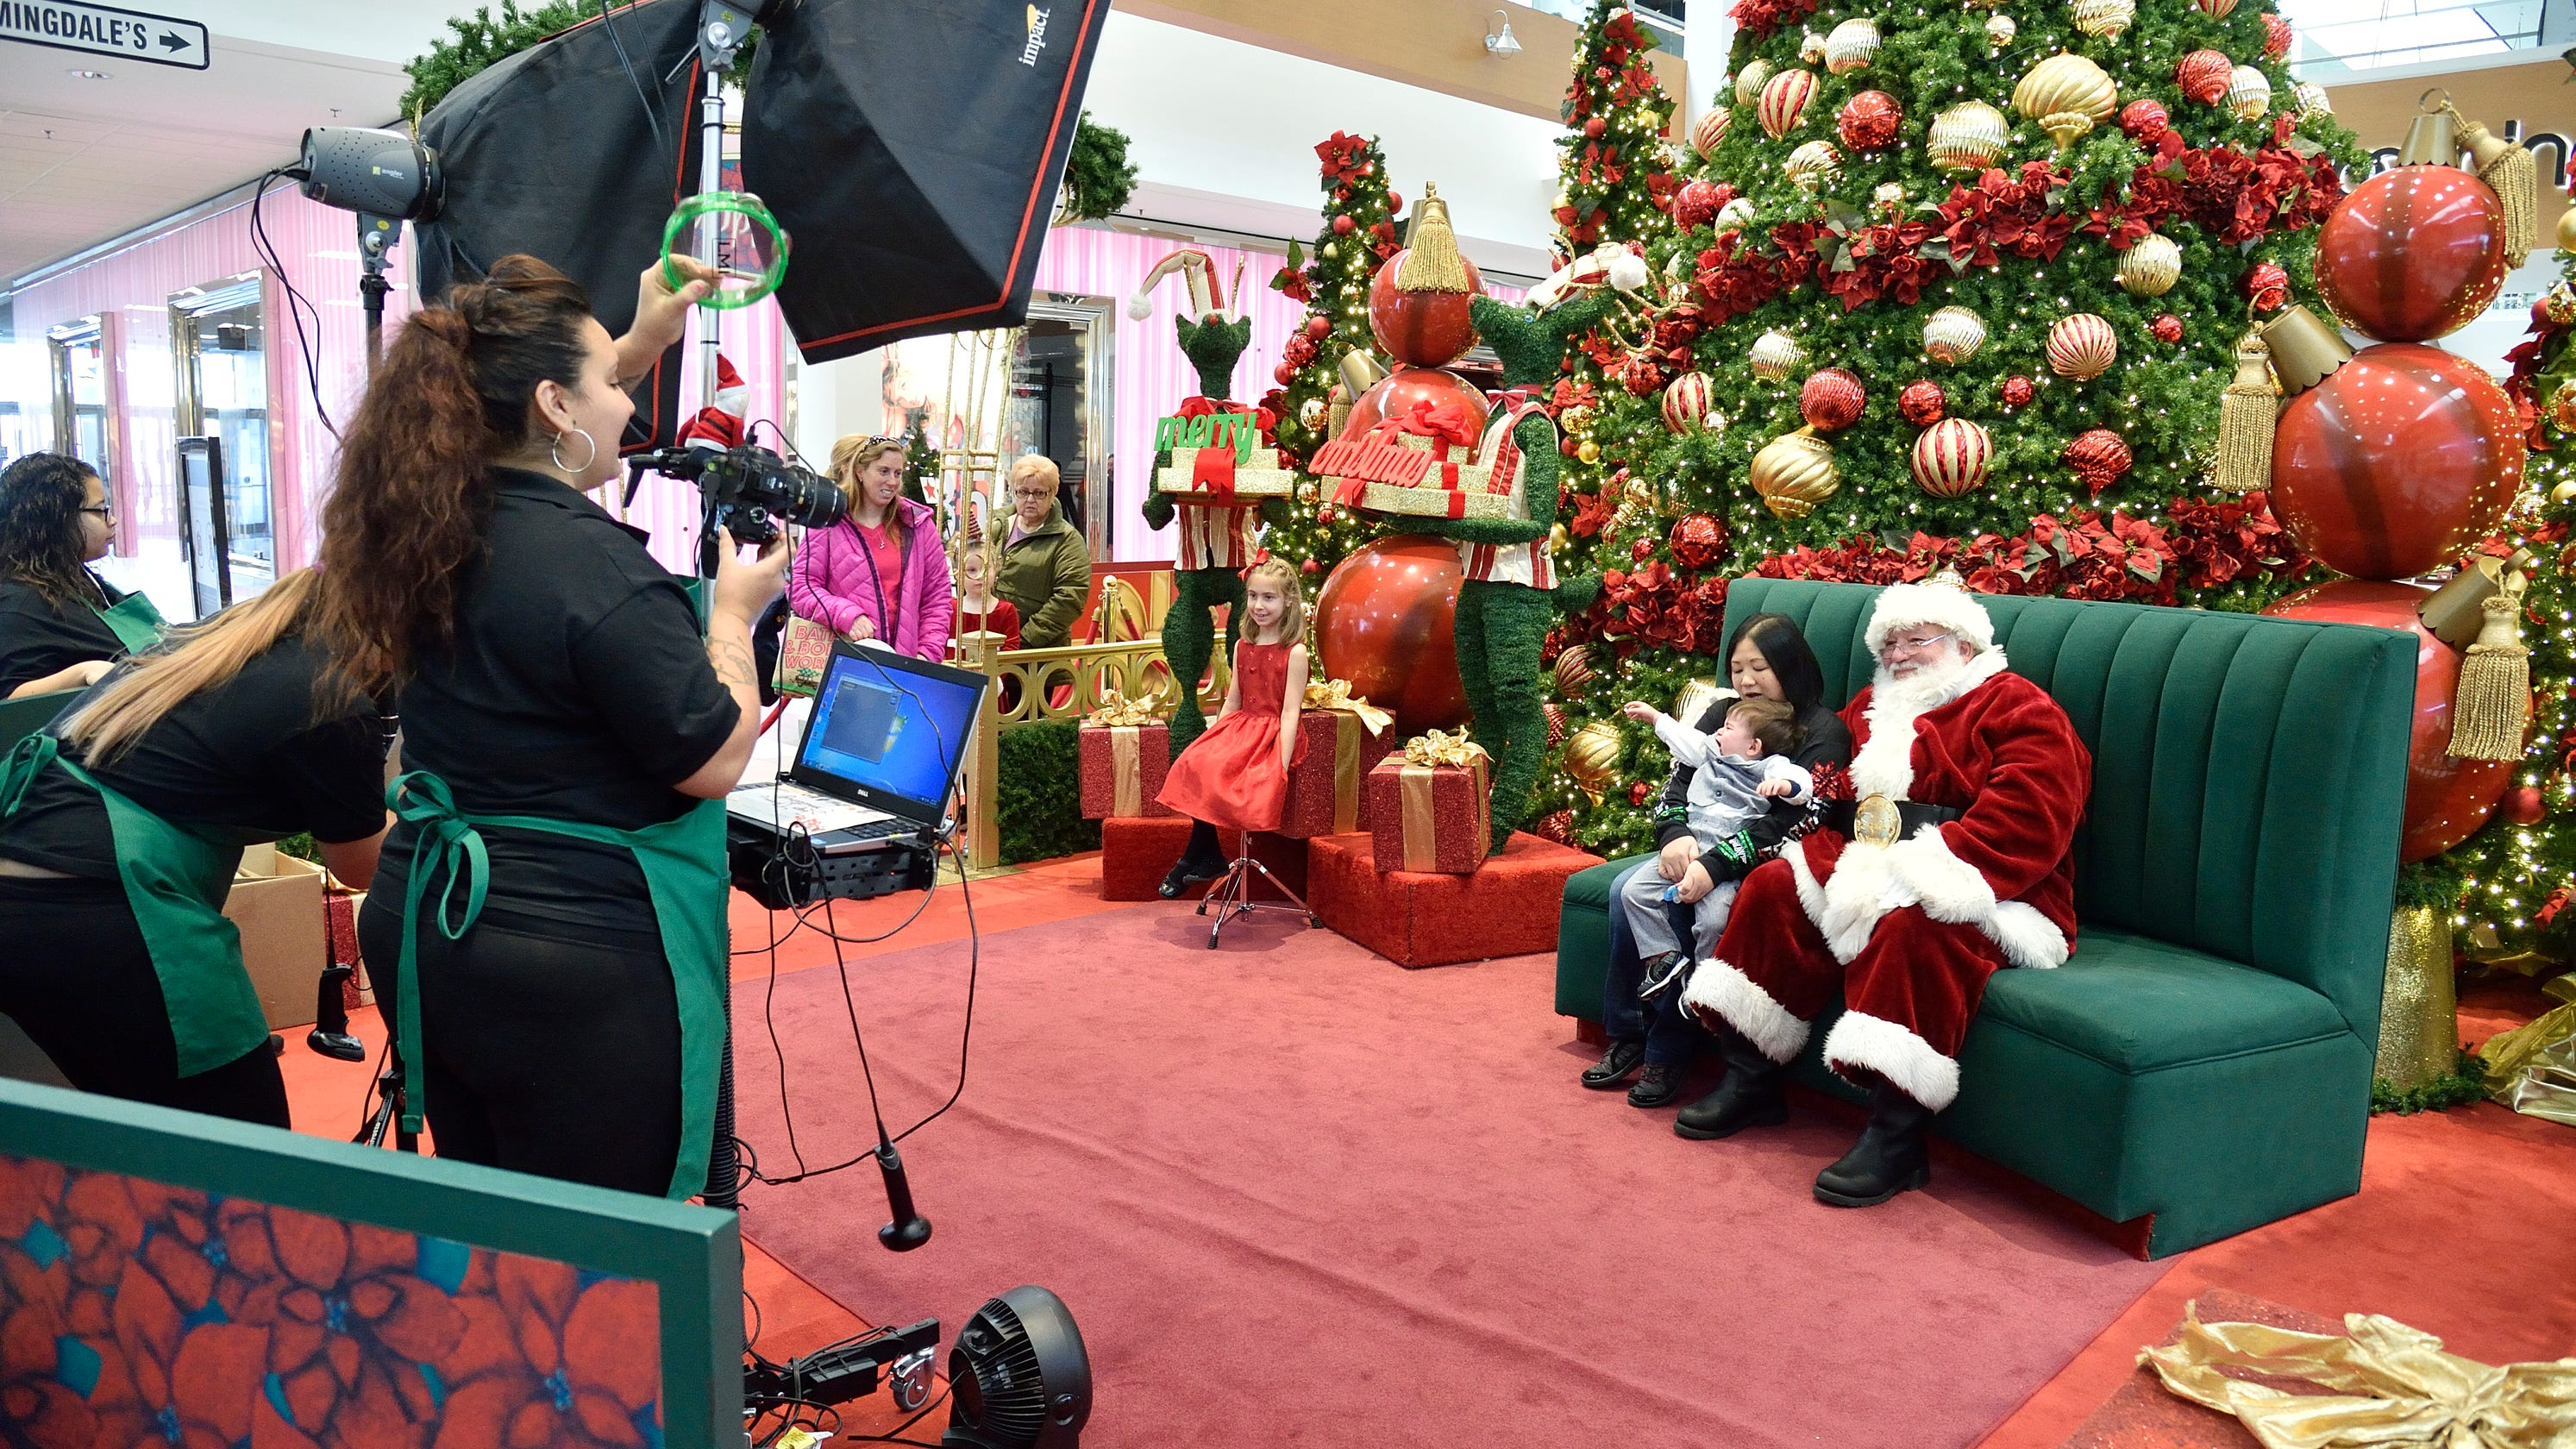 Taking your kids to see Santa at the mall?